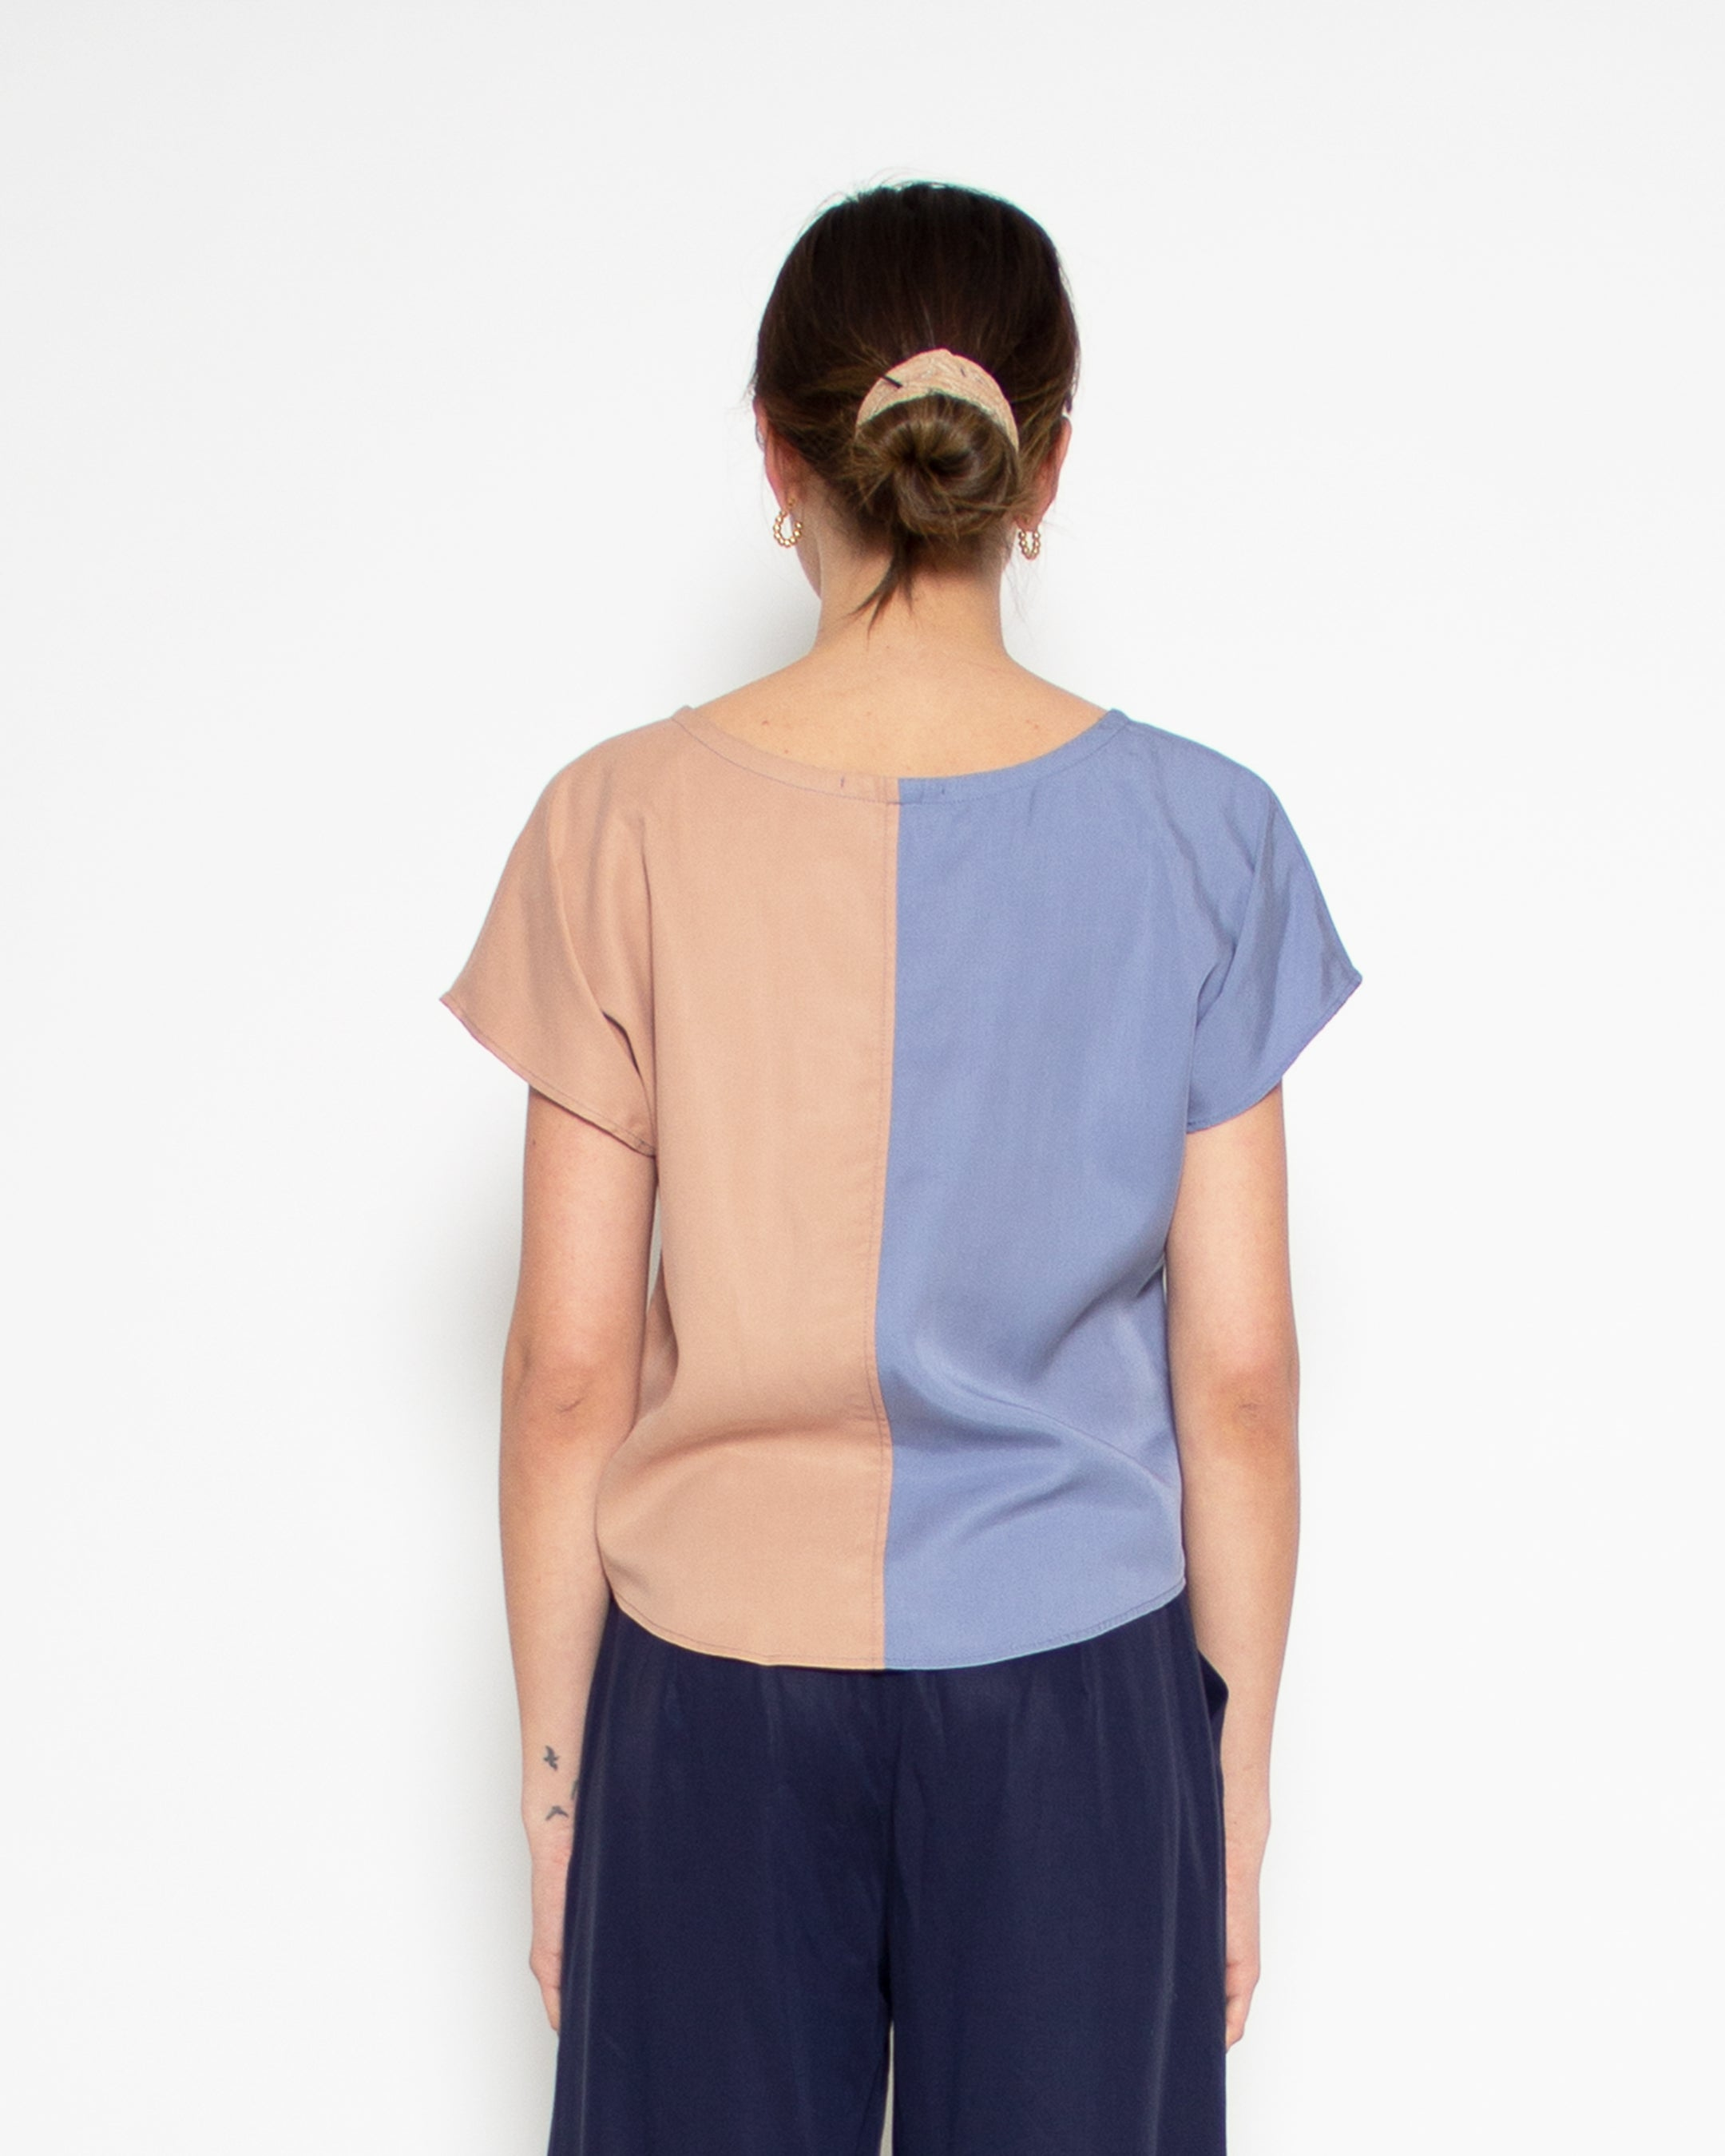 Sonia Contrast Top in Cornflower and Clay